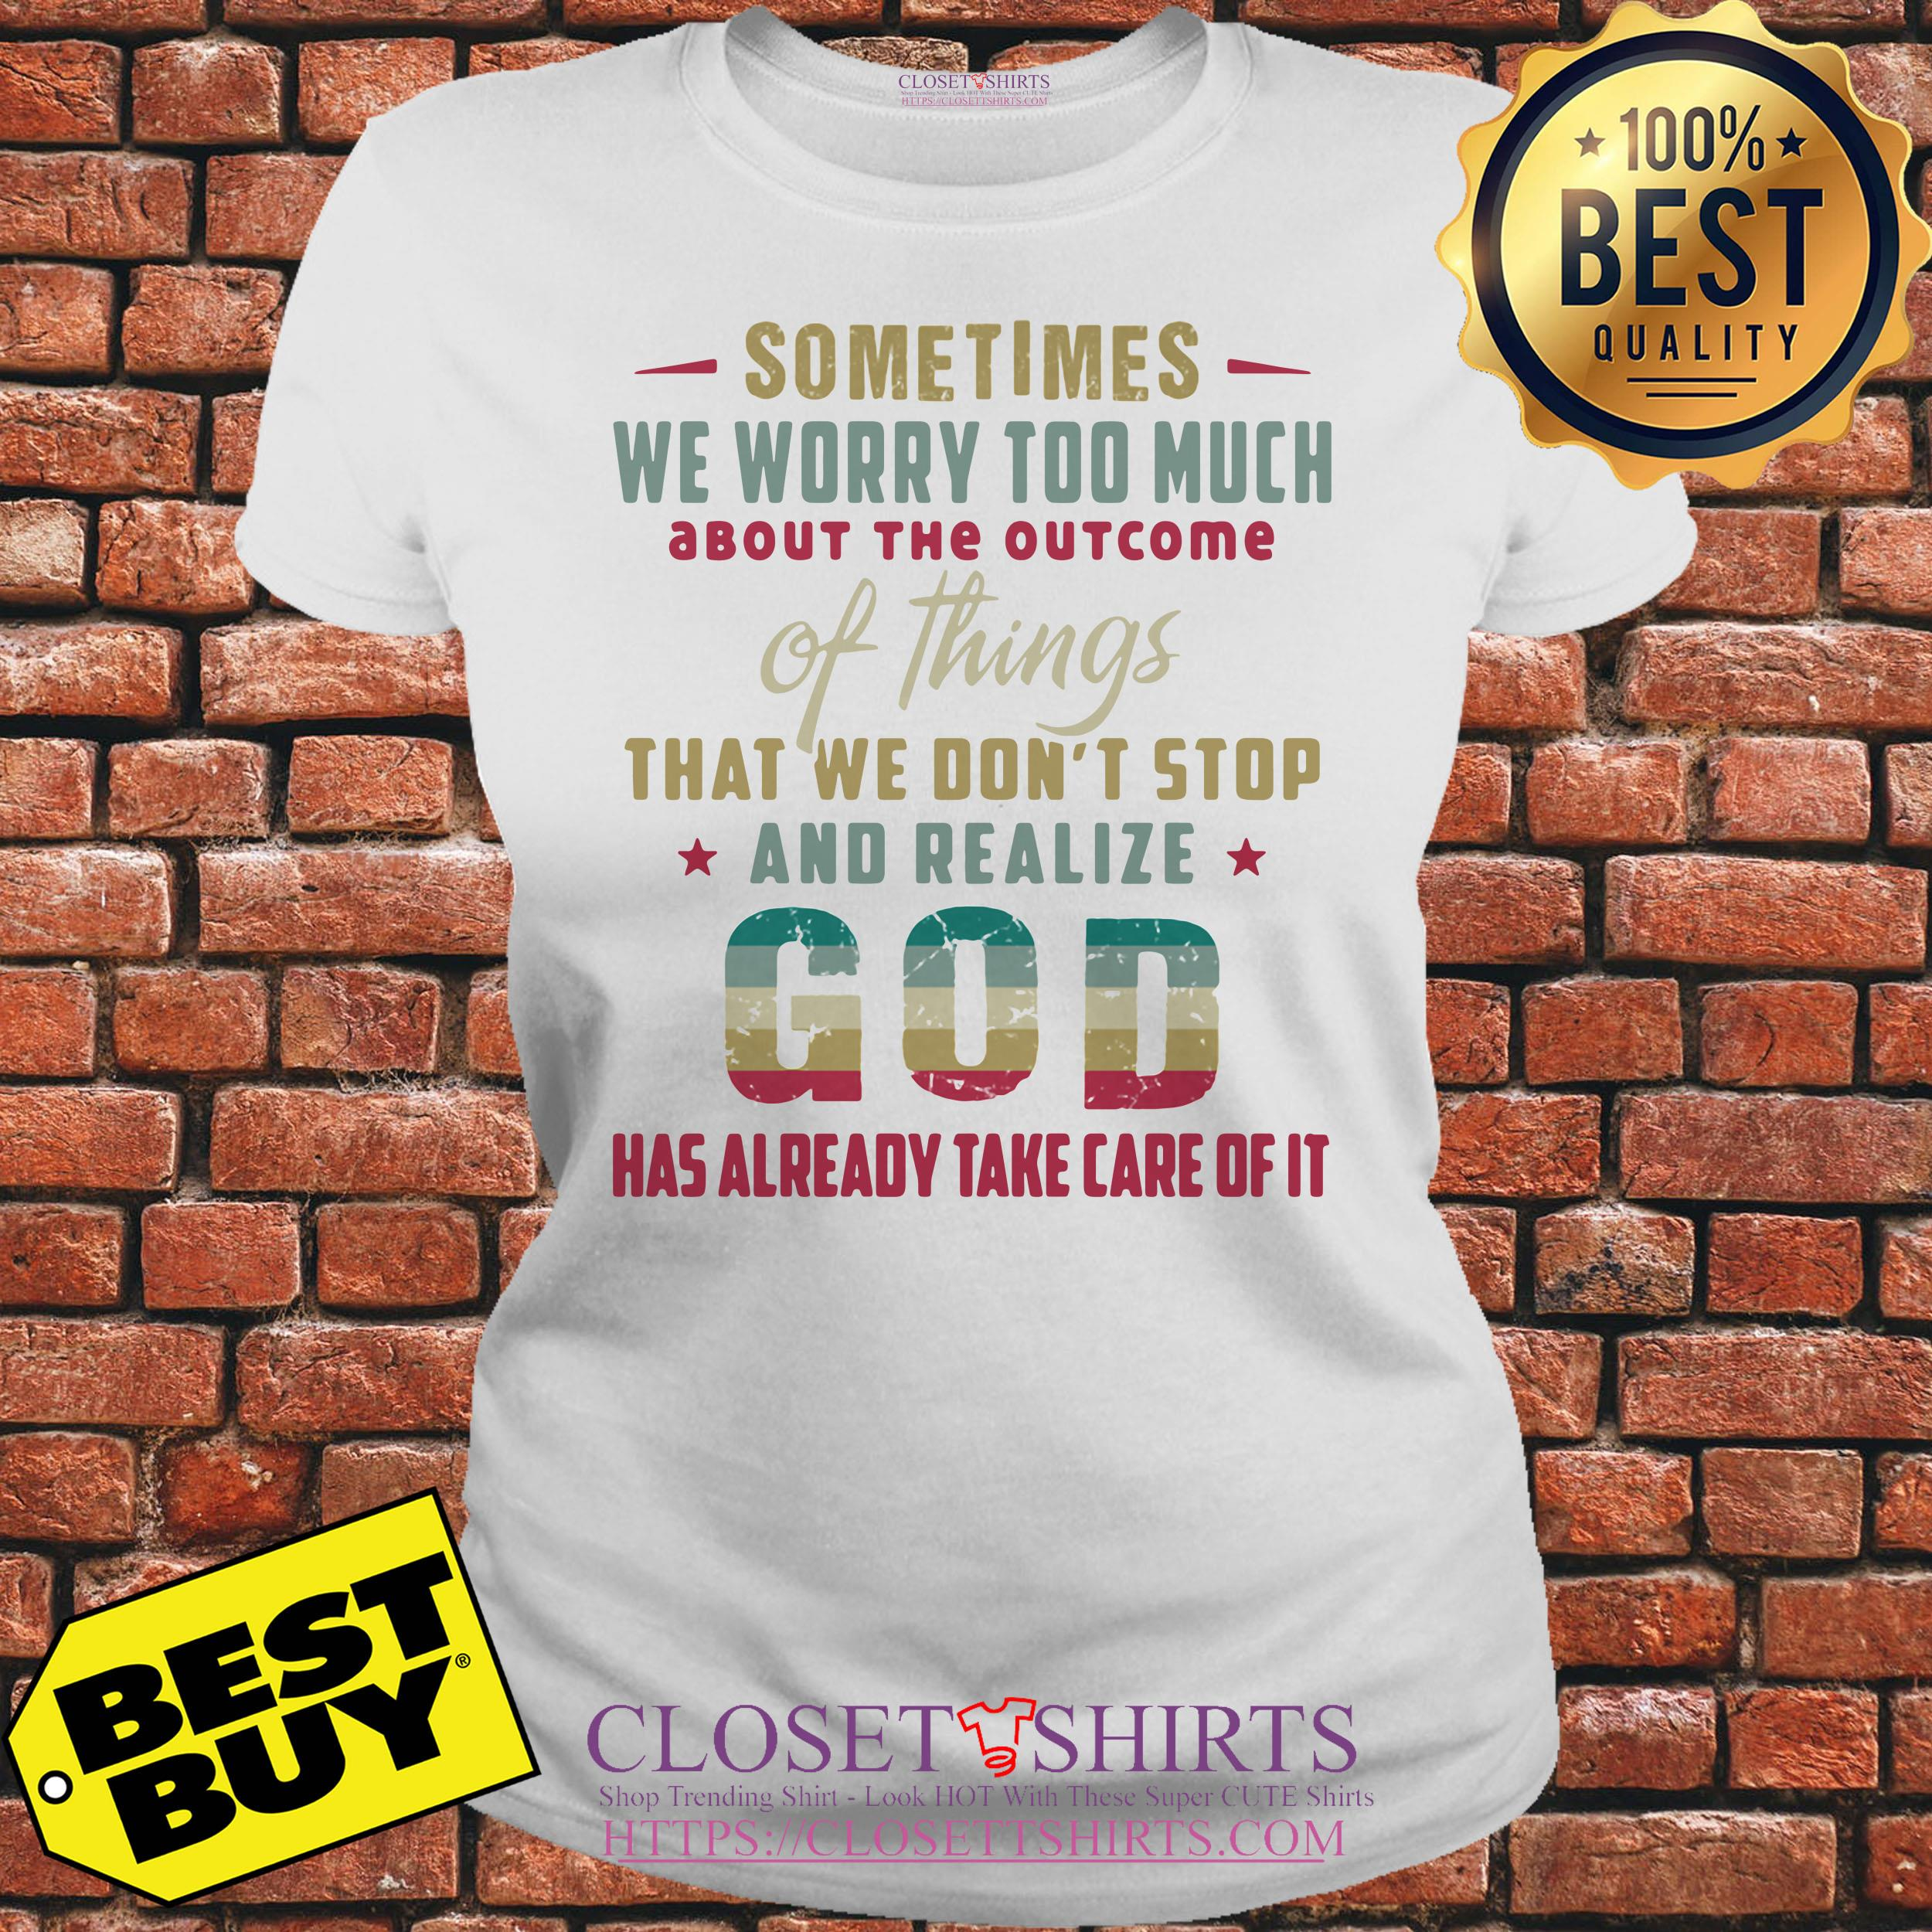 God Sometimes We Worry Too Much Has Already Take Care Of It ladies tee